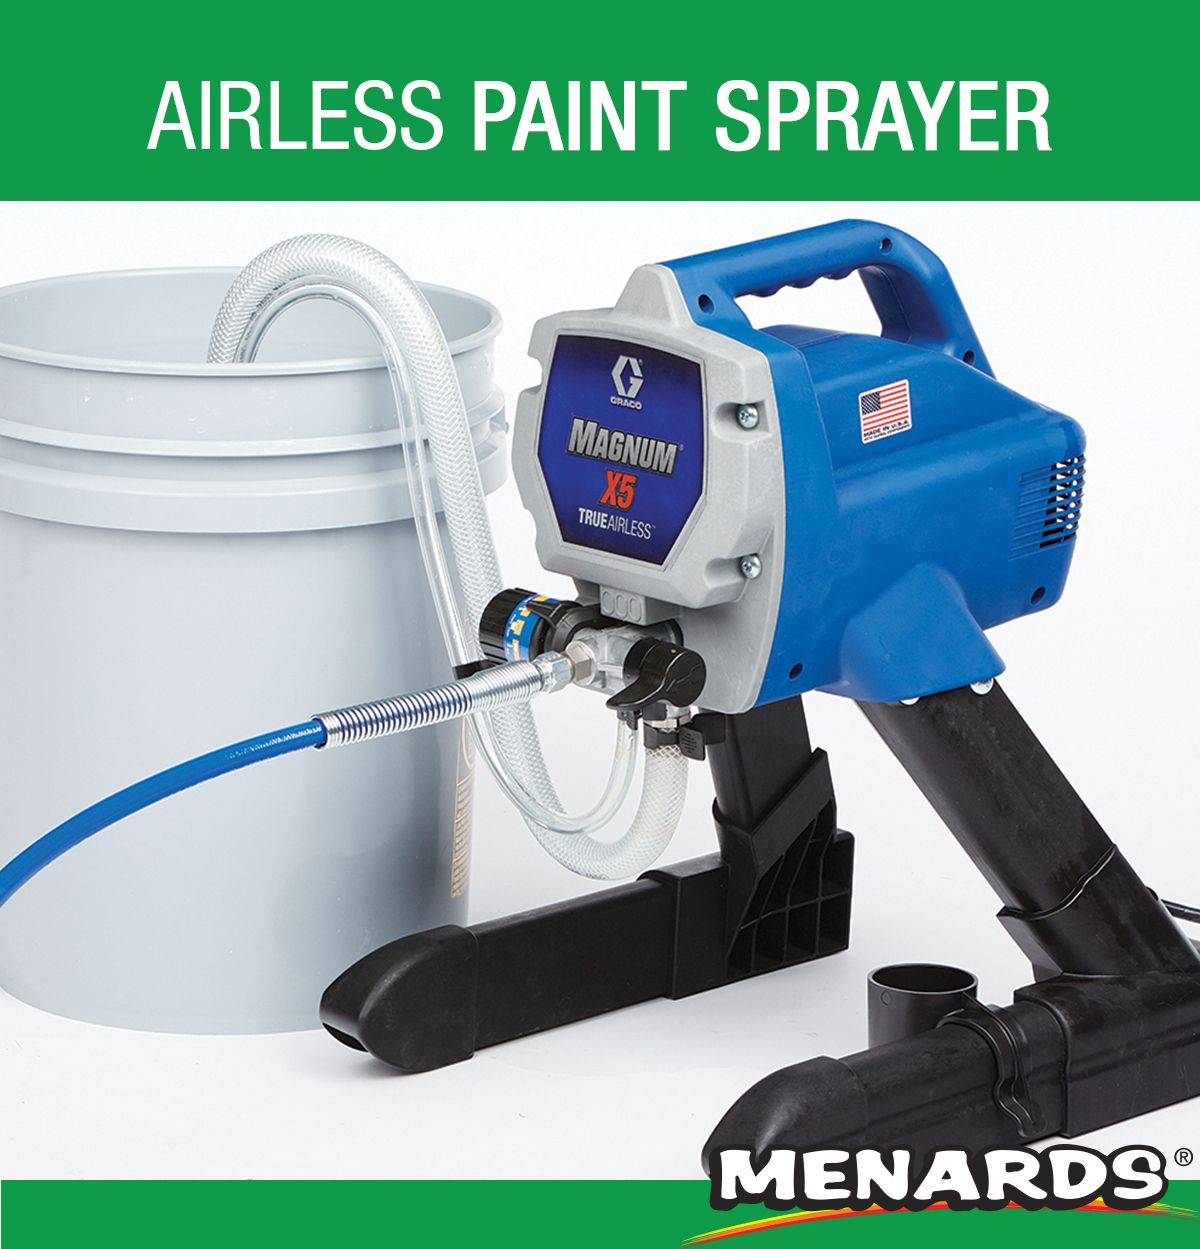 The Graco Magnum X5 Airless Paint Sprayer Is Ideal For A Homeowner Looking To Paint Walls Doors Ceilings Fences An Paint Sprayer Sprayers White Paint Colors